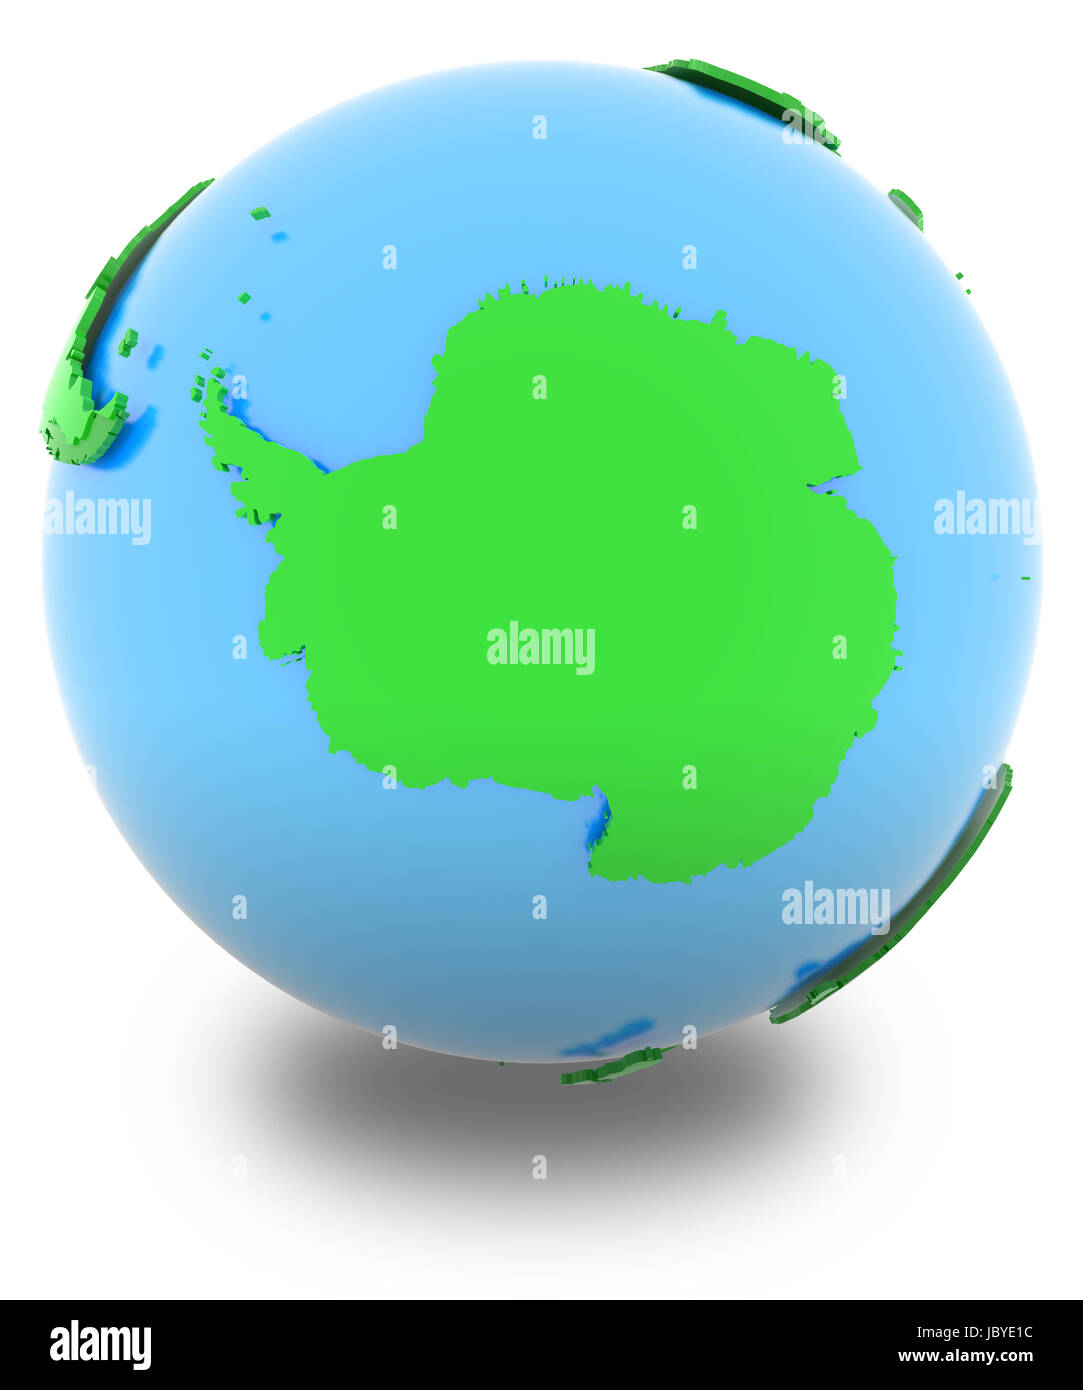 Antarctic Political Map Of The World In Various Shades Of Green